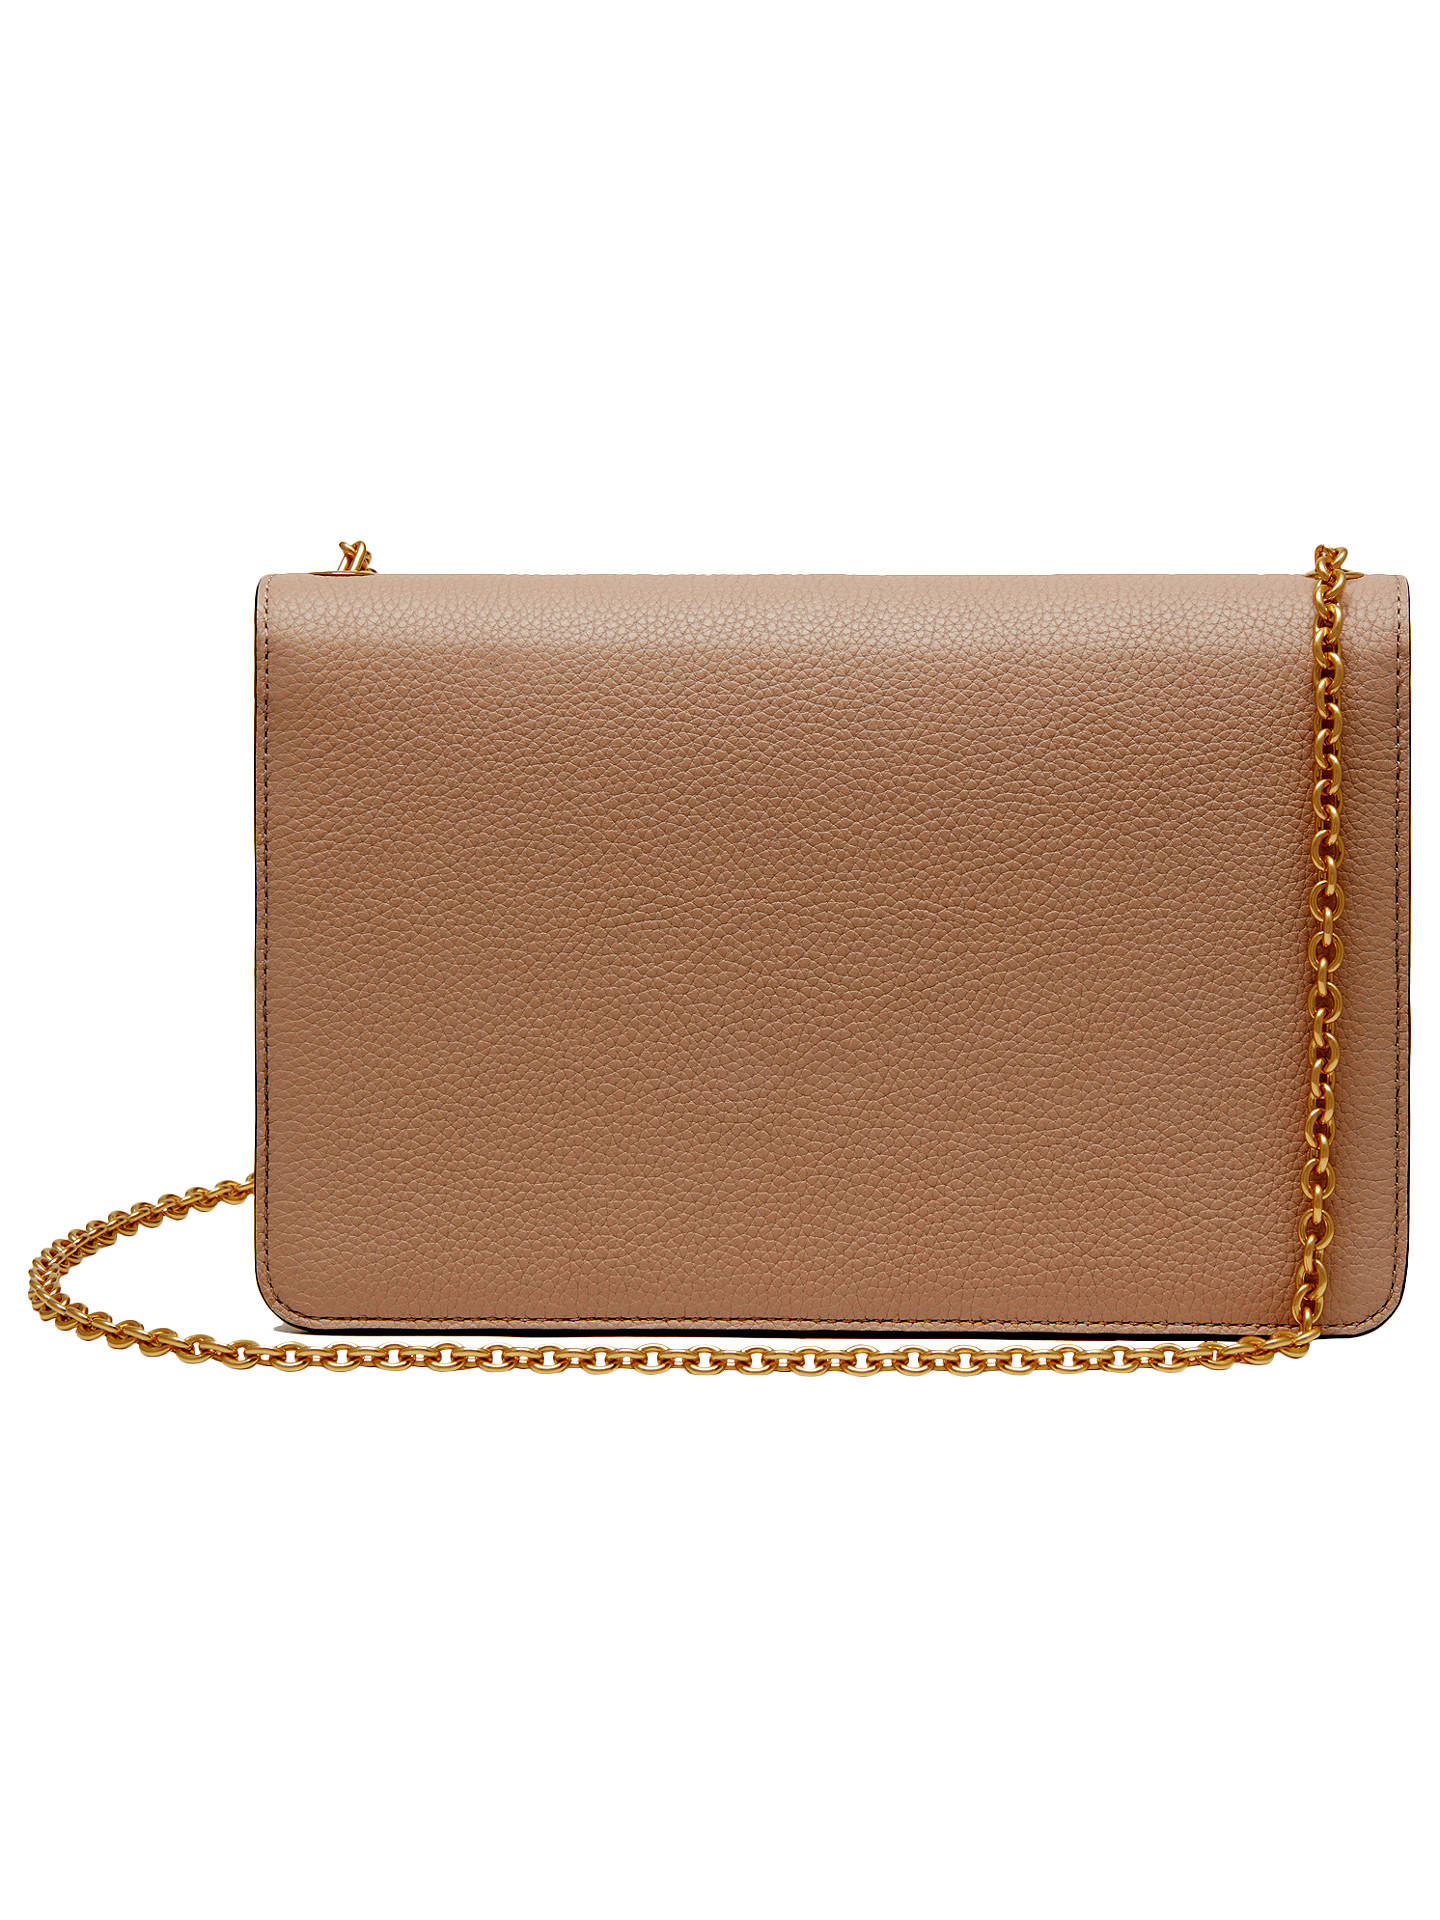 c53fcdaf1066 ... new style buymulberry darley grain leather bag rosewater online at  johnlewis 67744 817ed